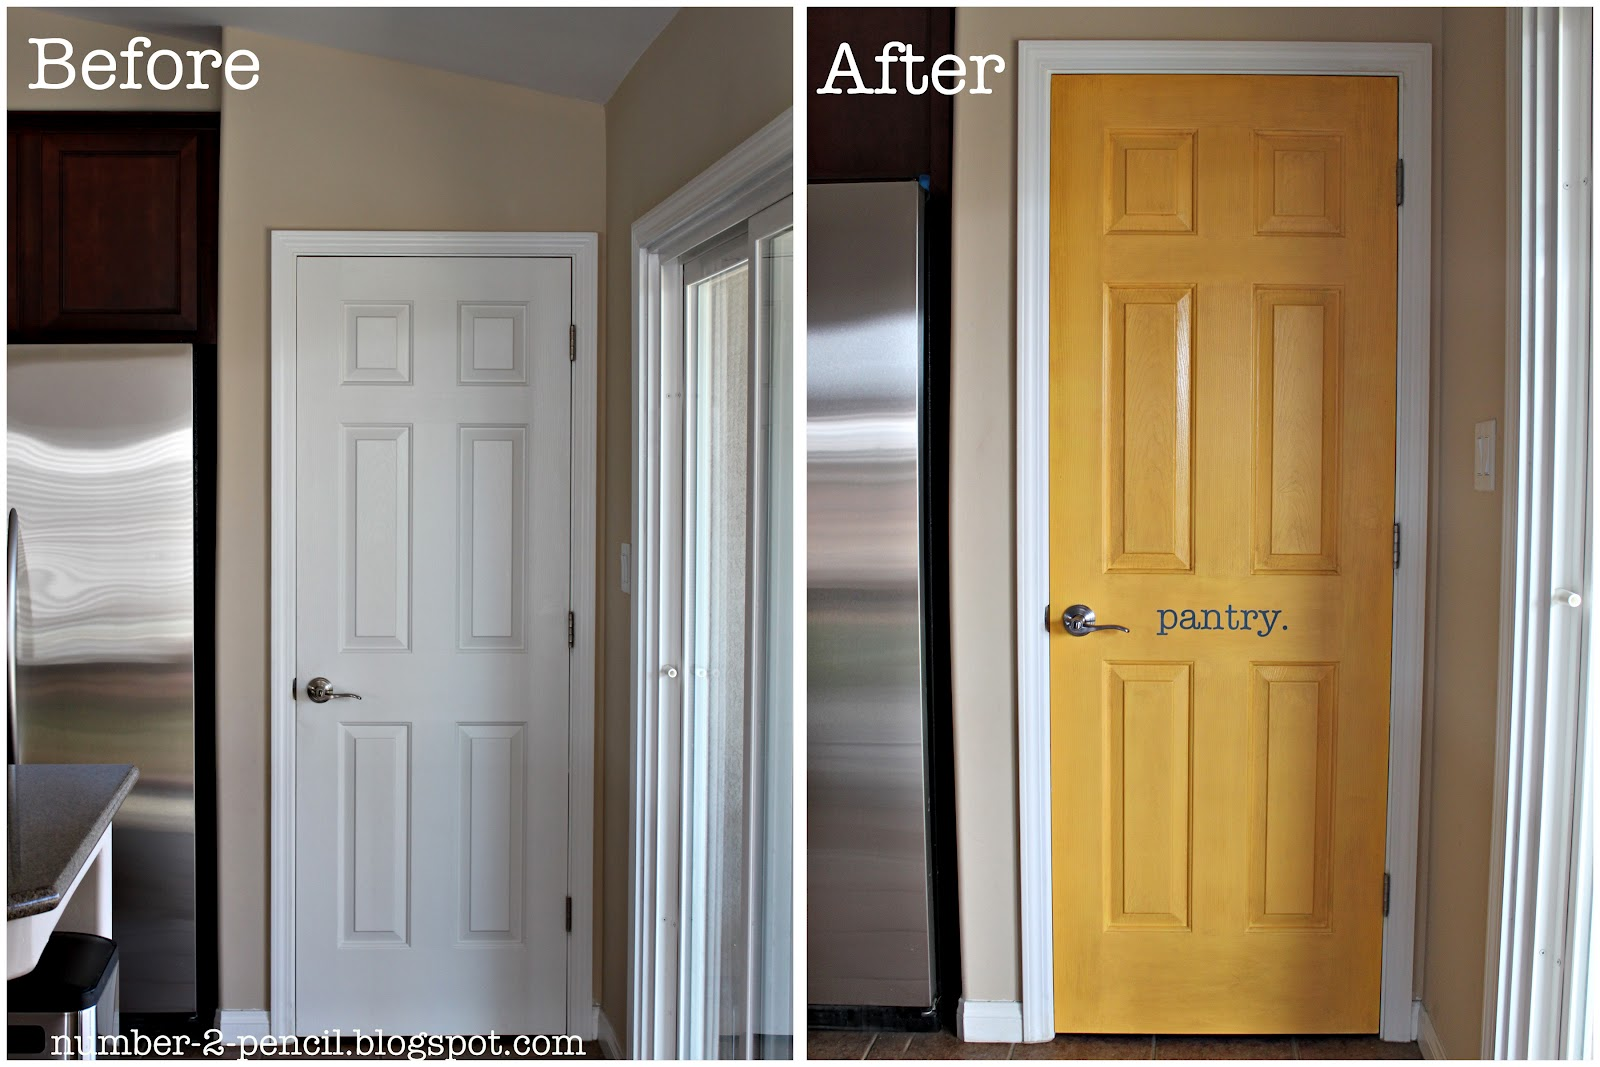 Yellow Pantry Door Makeover & Yellow Pantry Door Makeover - No. 2 Pencil